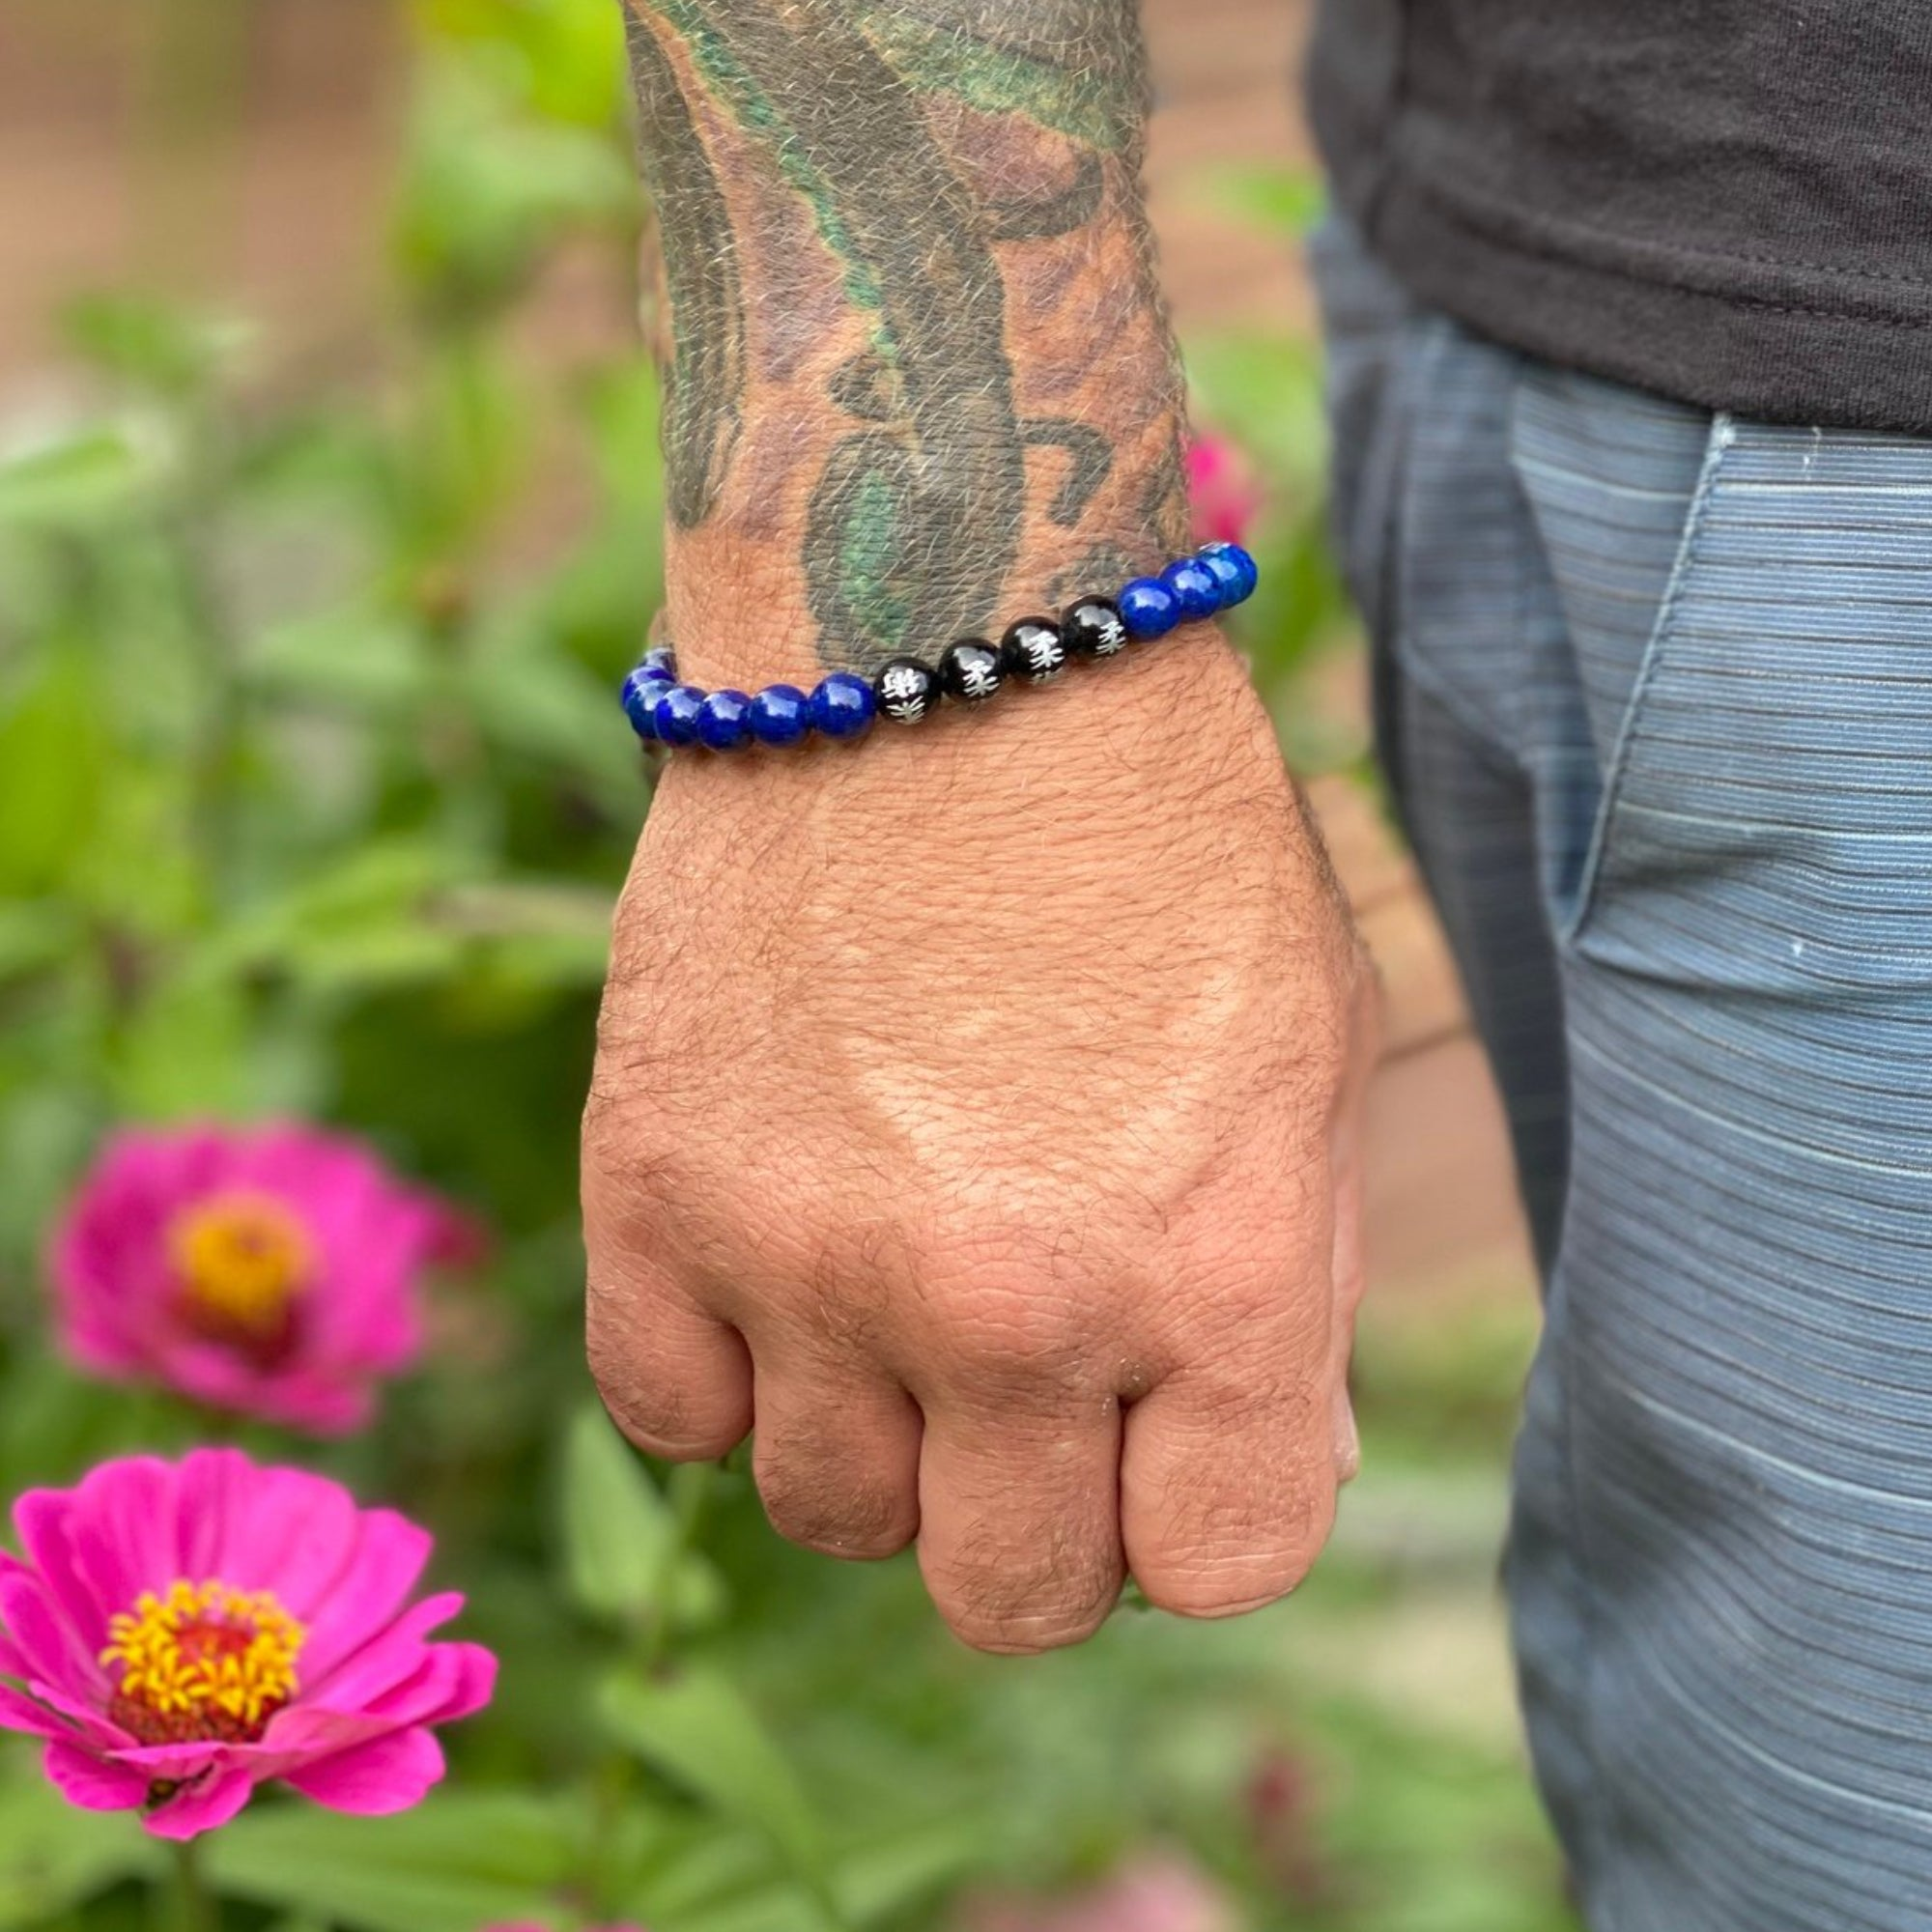 BLUE BELT - Ranked Stone Jiu-Jitsu Bracelet